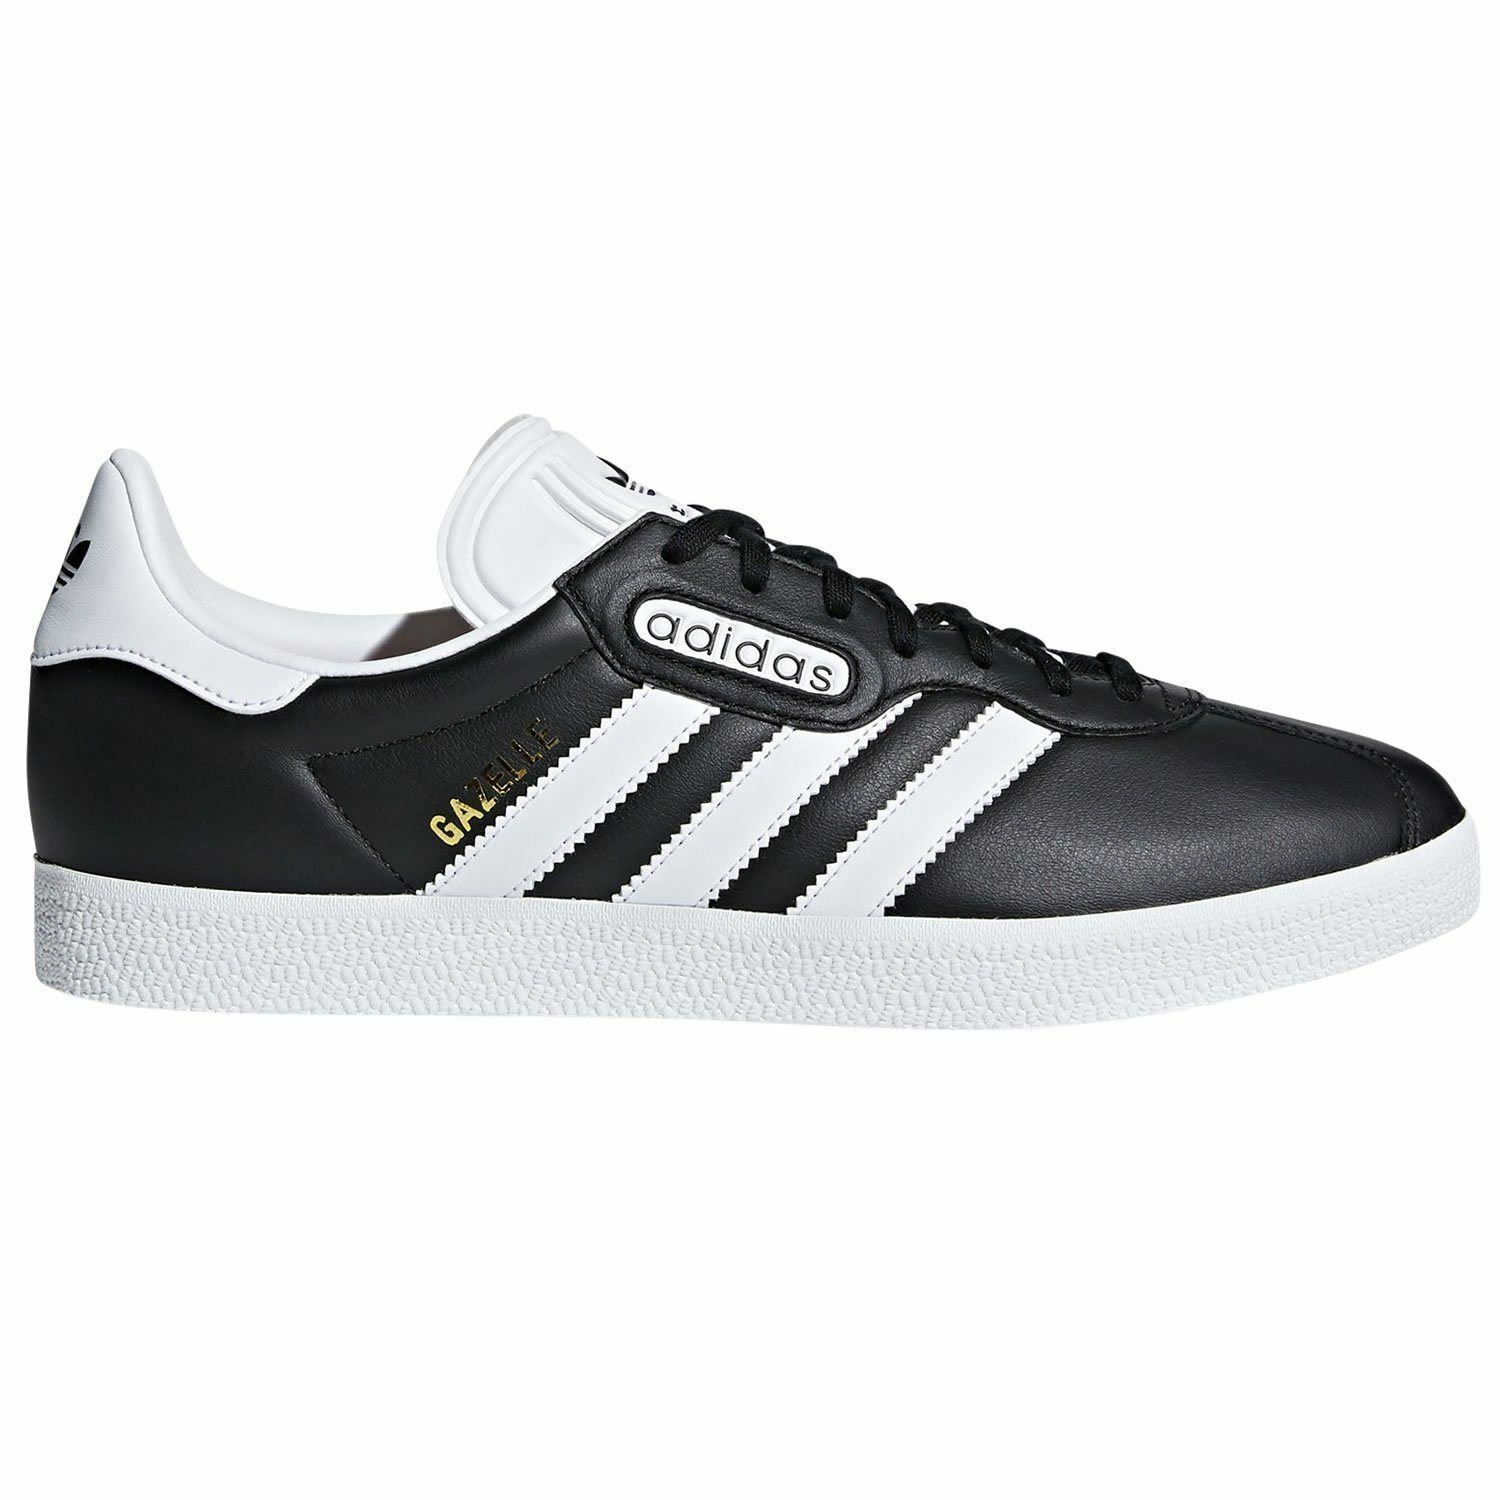 Adidas ORIGINALS WORLD CUP GAZELLE SUPER SHOES BLACK TRAINERS SNEAKERS KICKS